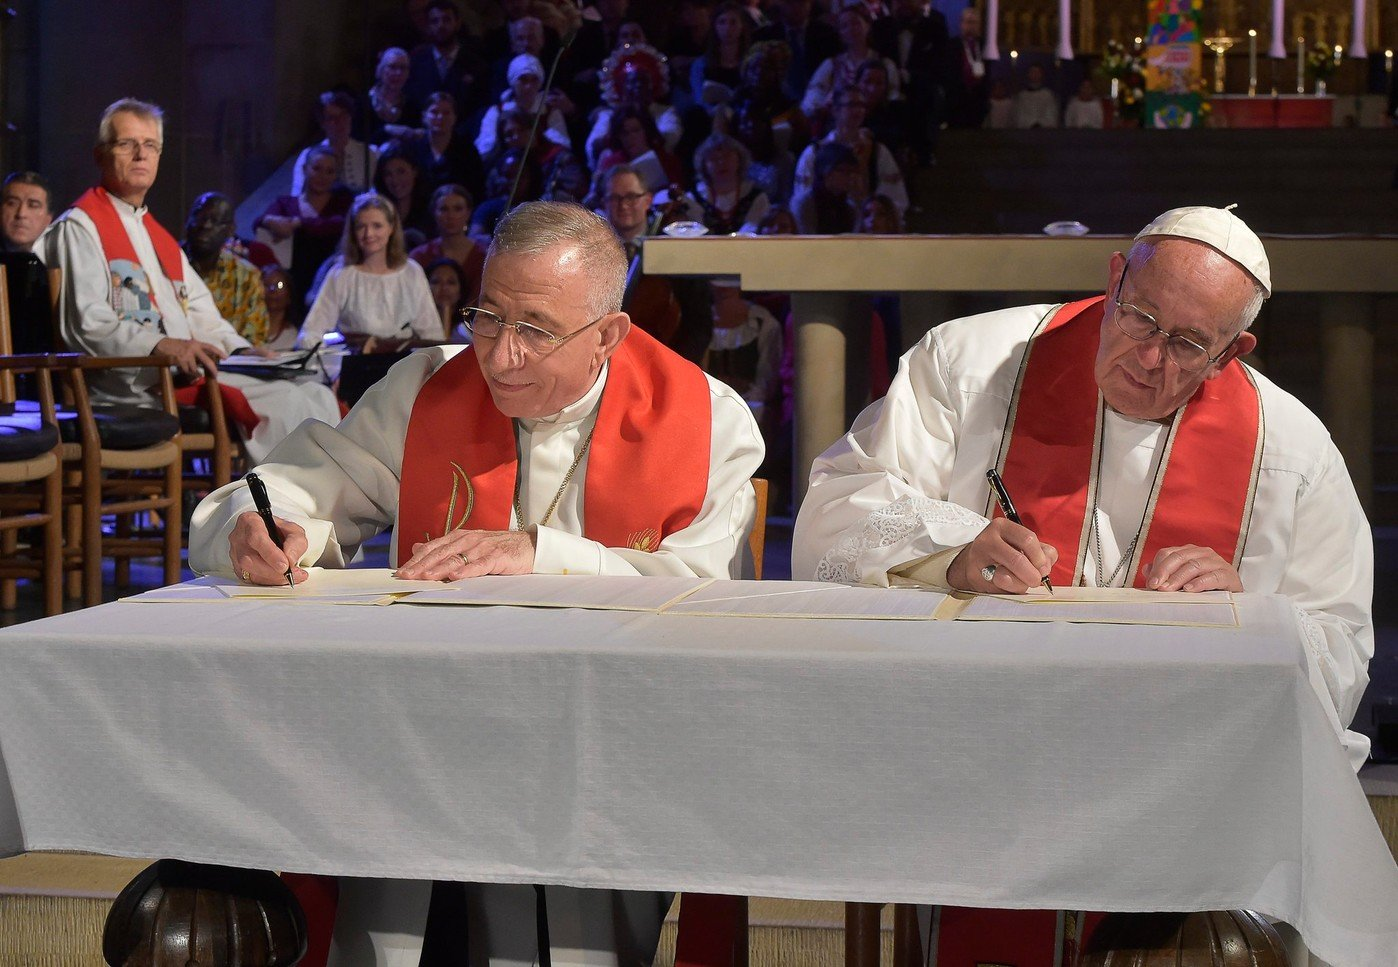 Francois leveque Munib Younan president Federation lutherienne mondialedune ceremonie oecumenique cathedrale Lund Suede 31 octobre 2016 0 1400 967